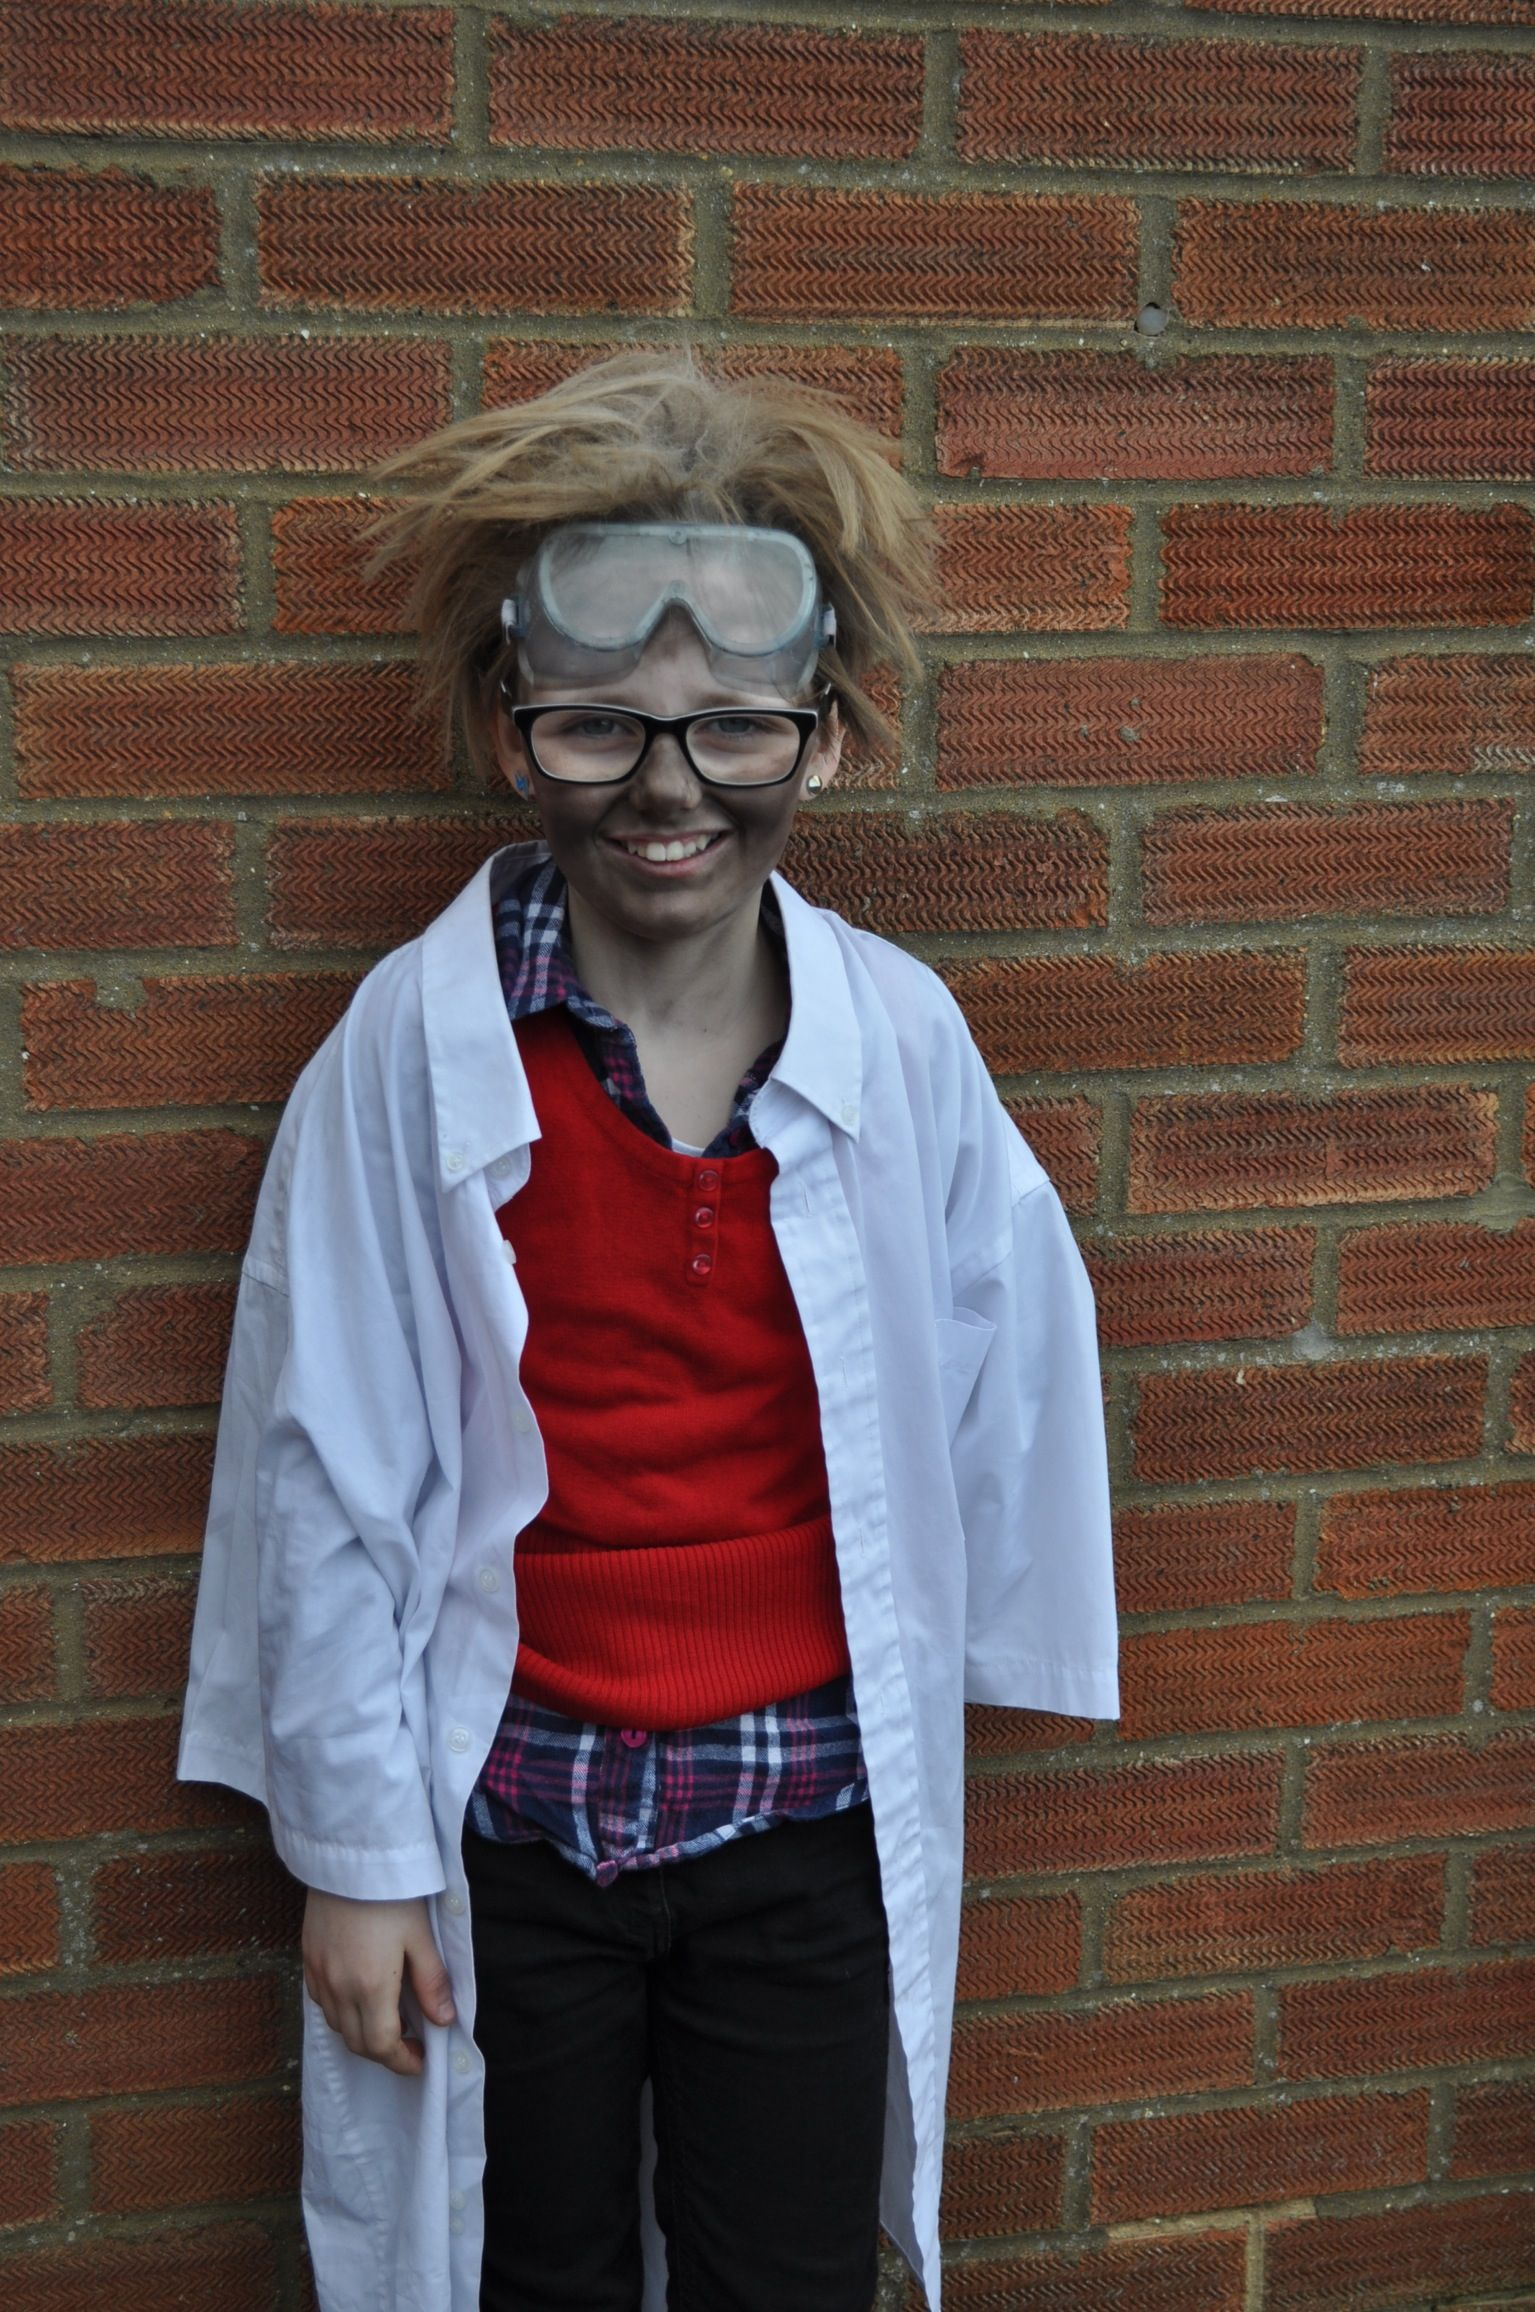 evil scientist costume. science circus. makeup | science | pinterest